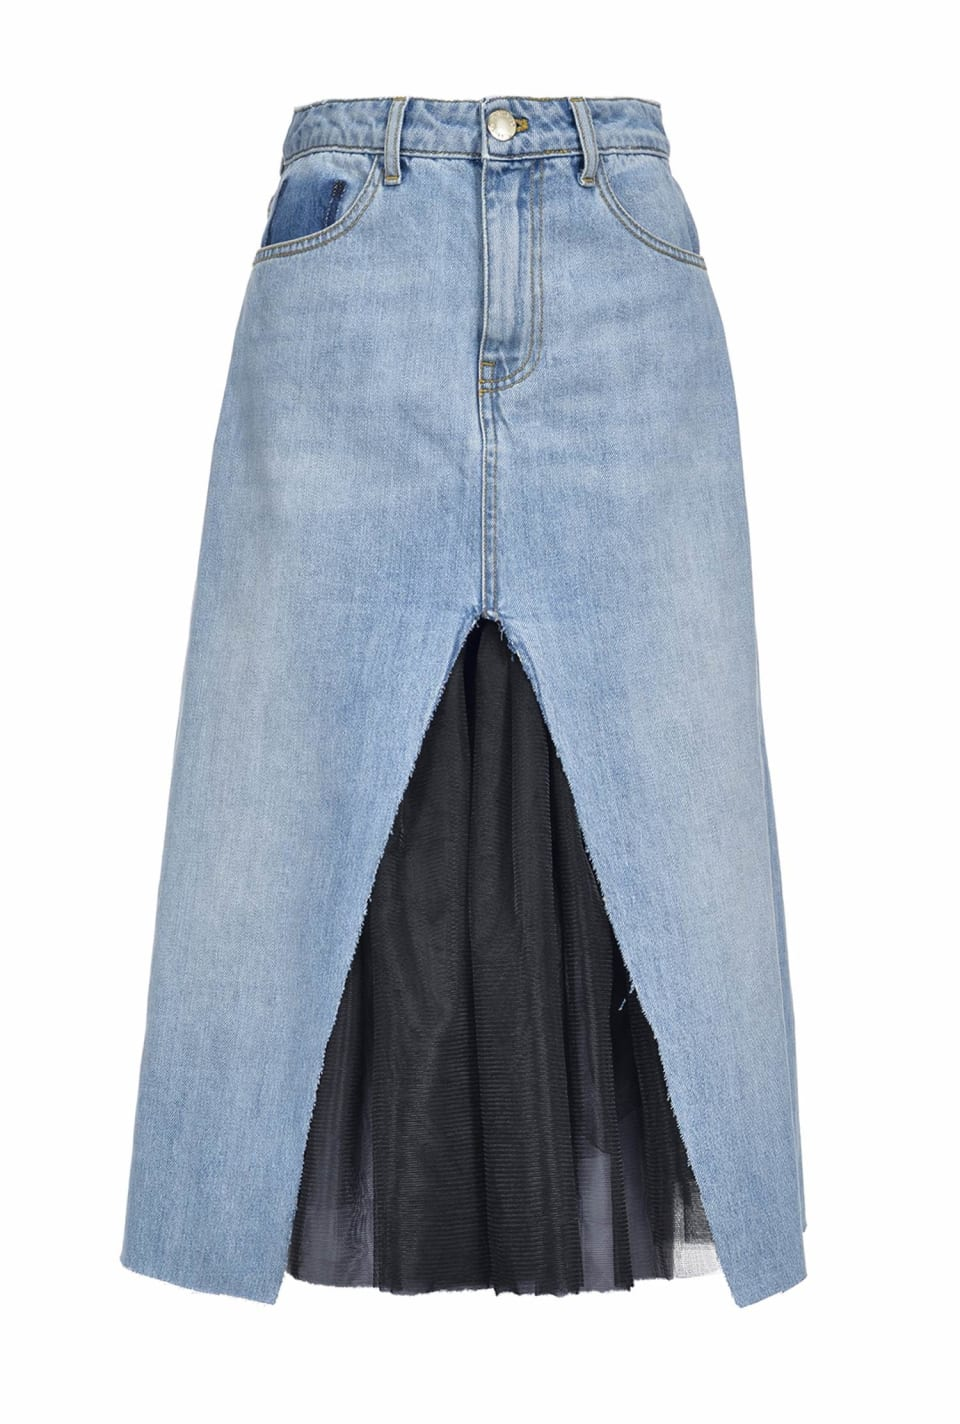 Denim and tulle skirt